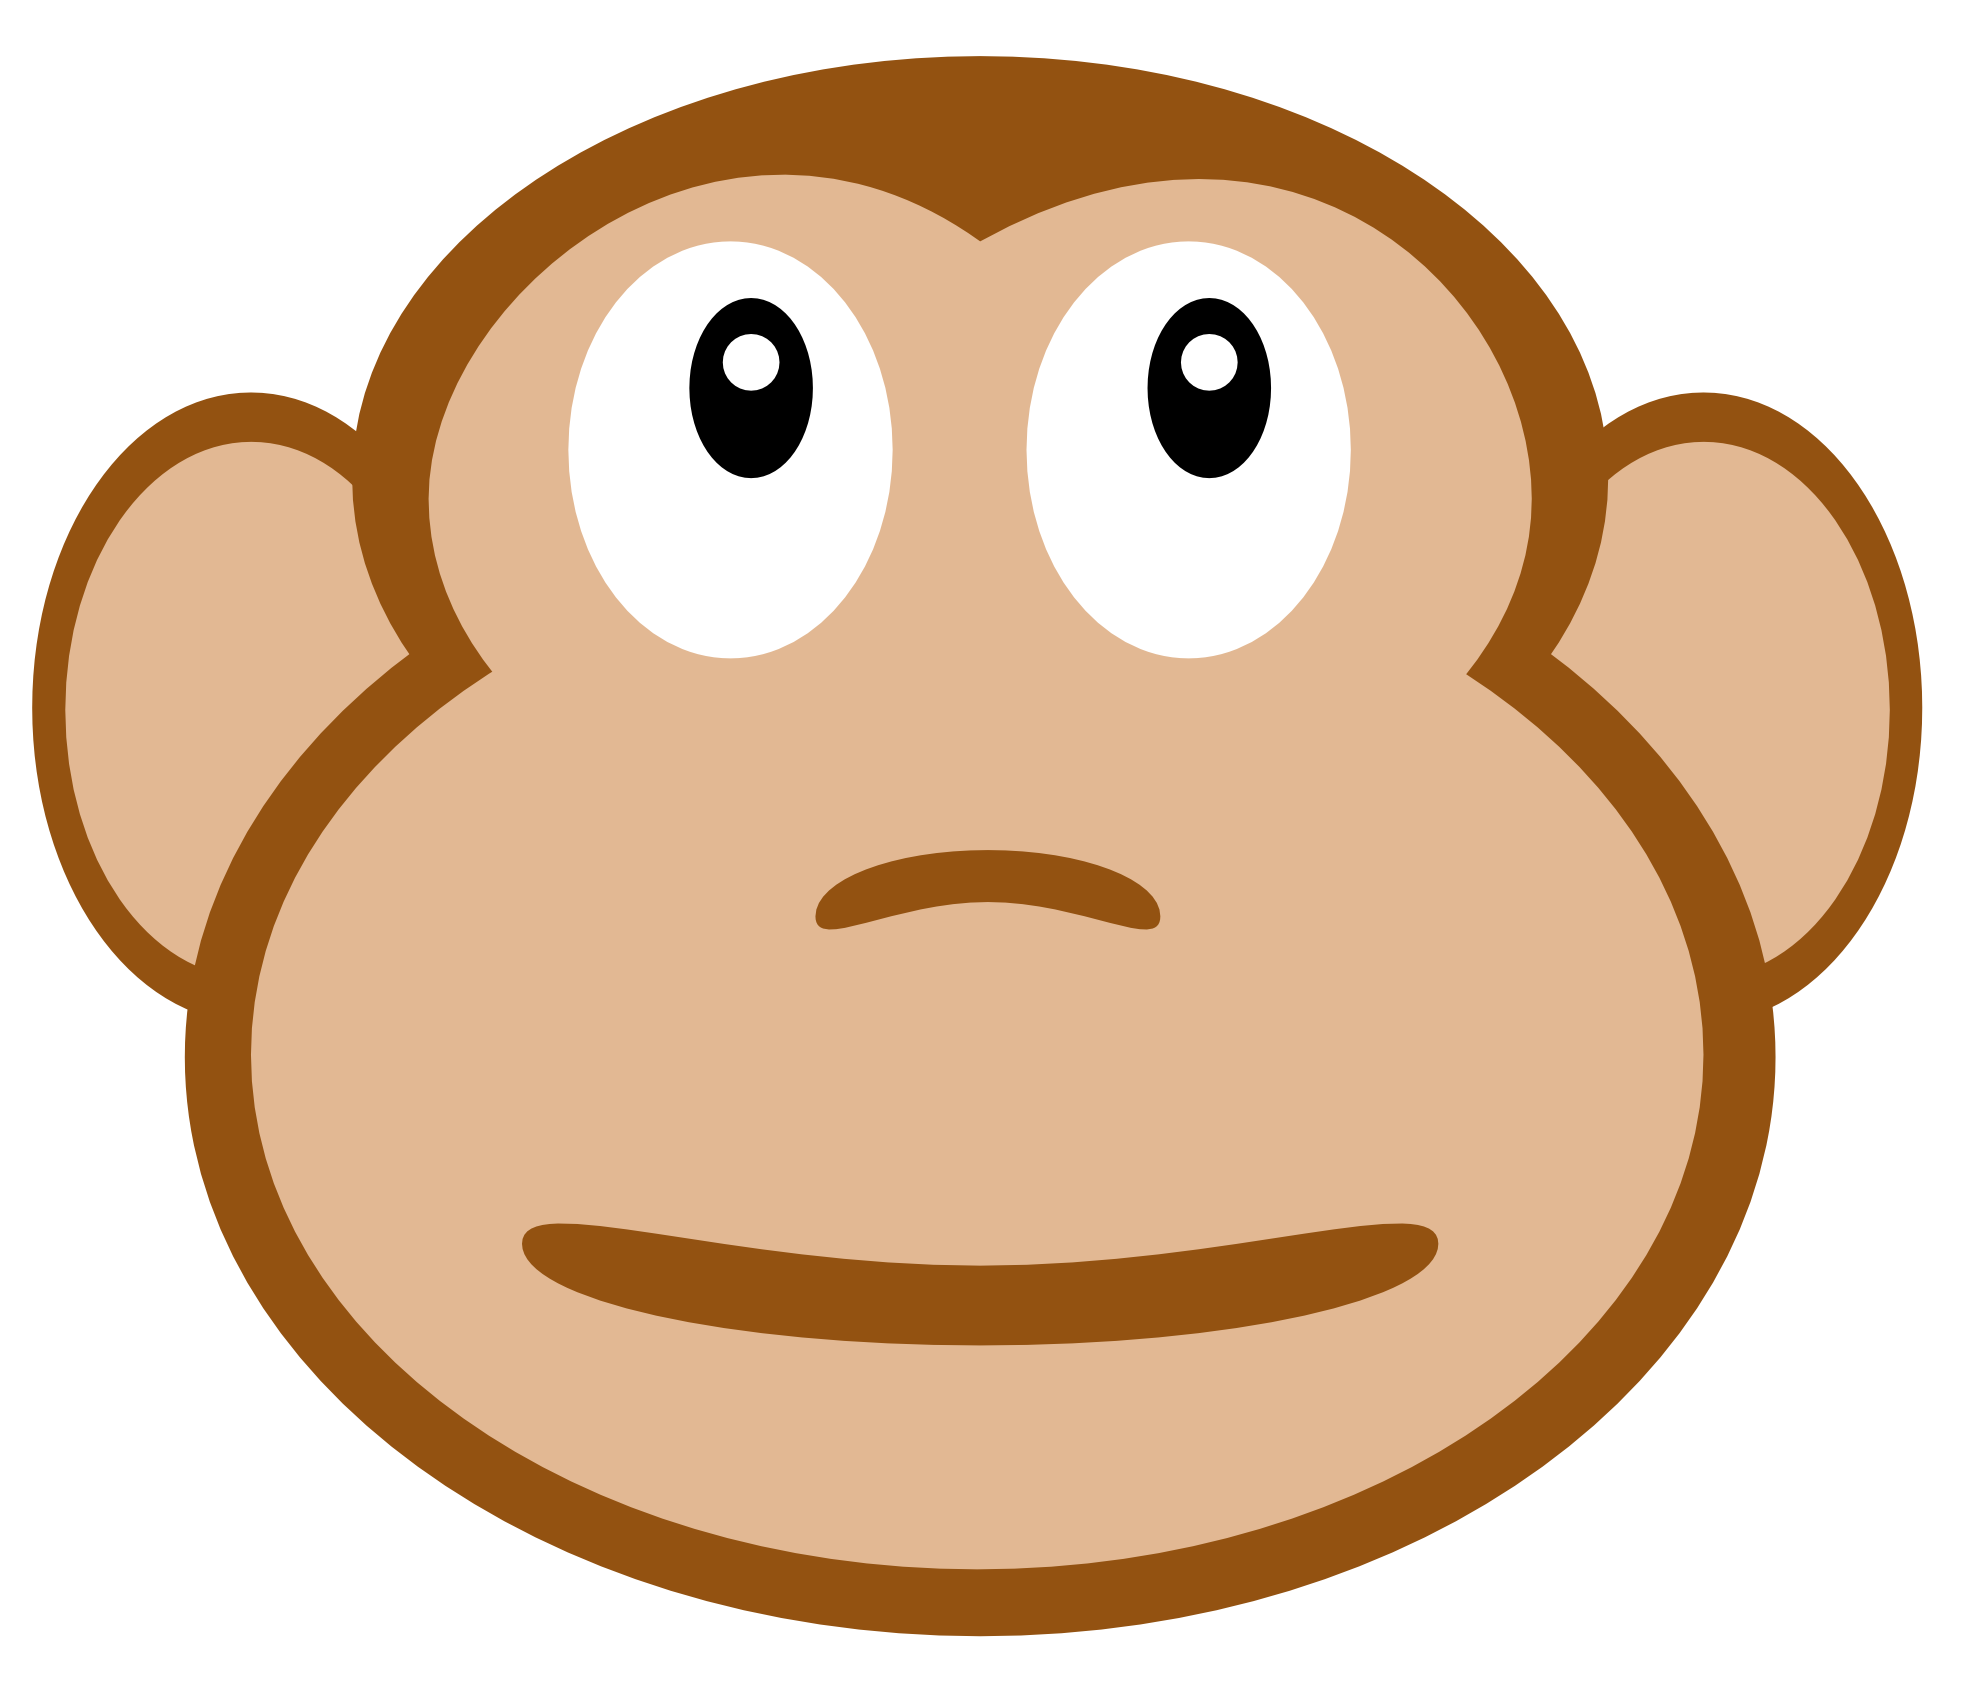 Monkey Face Drawing - Clipart Library-Monkey Face Drawing - Clipart library-13